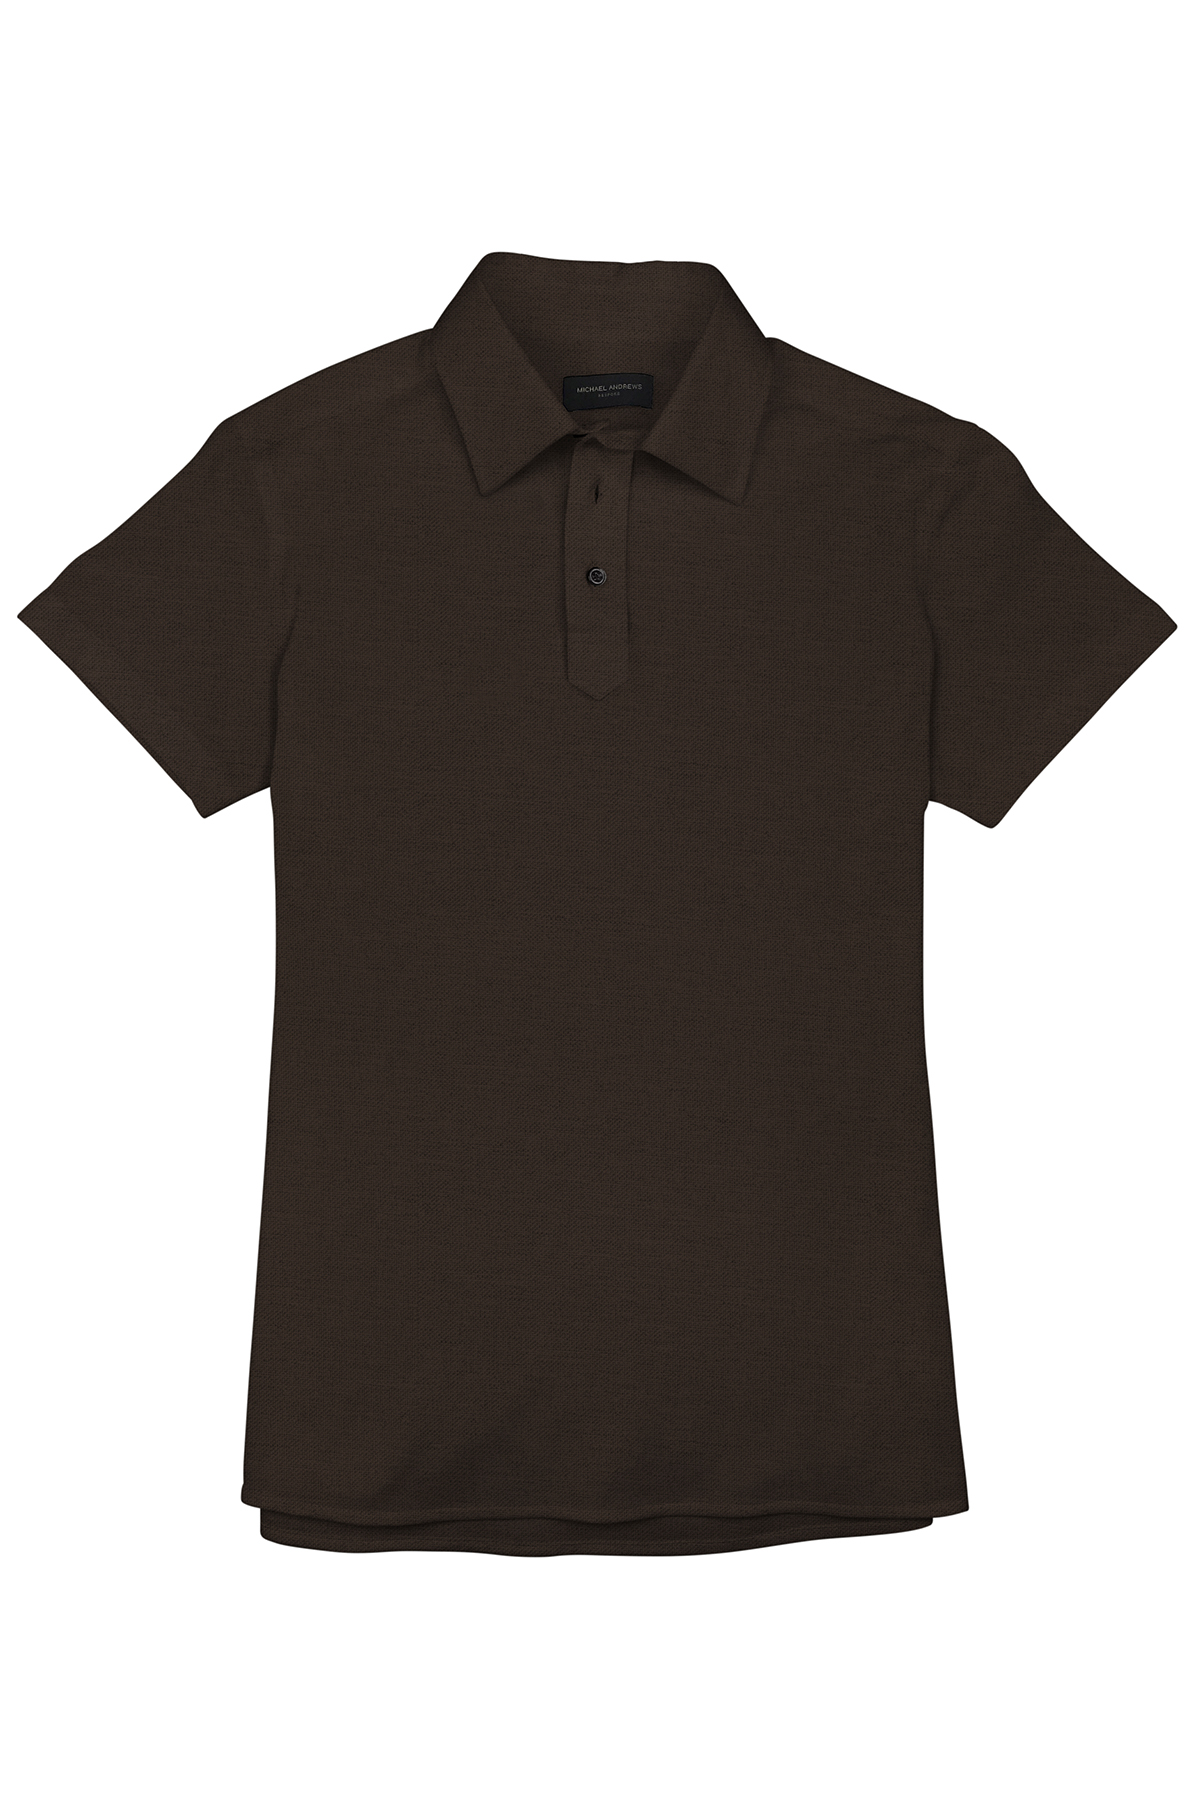 Brown Pique Short Sleeve Polo Shirt